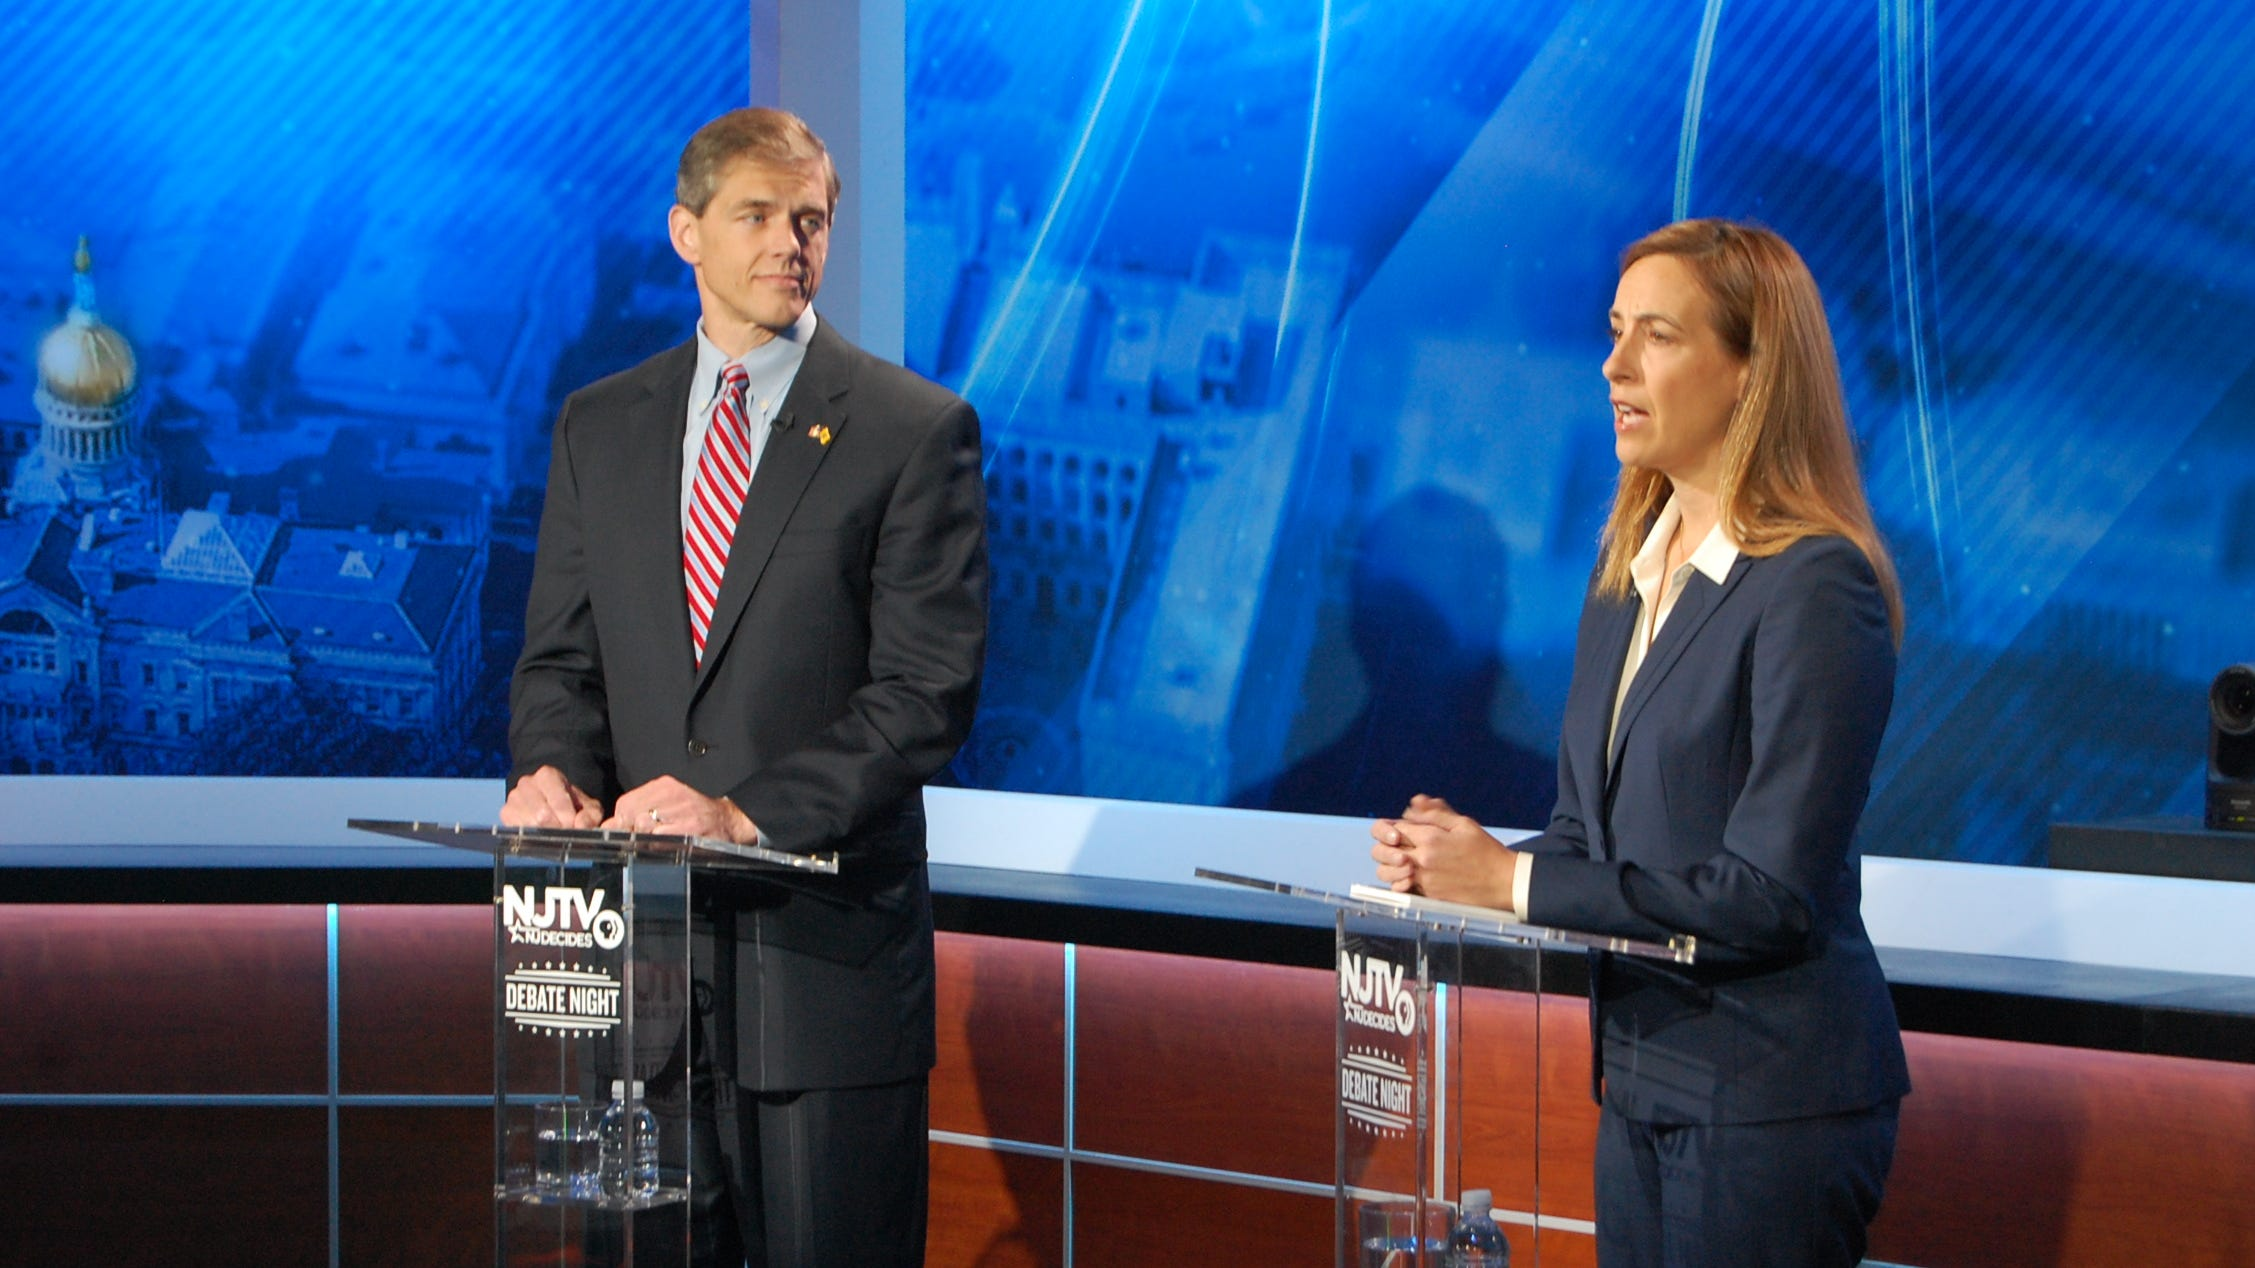 Jay Webber and Mikie Sherrill: What we saw ahead of NJ midterm election 2018